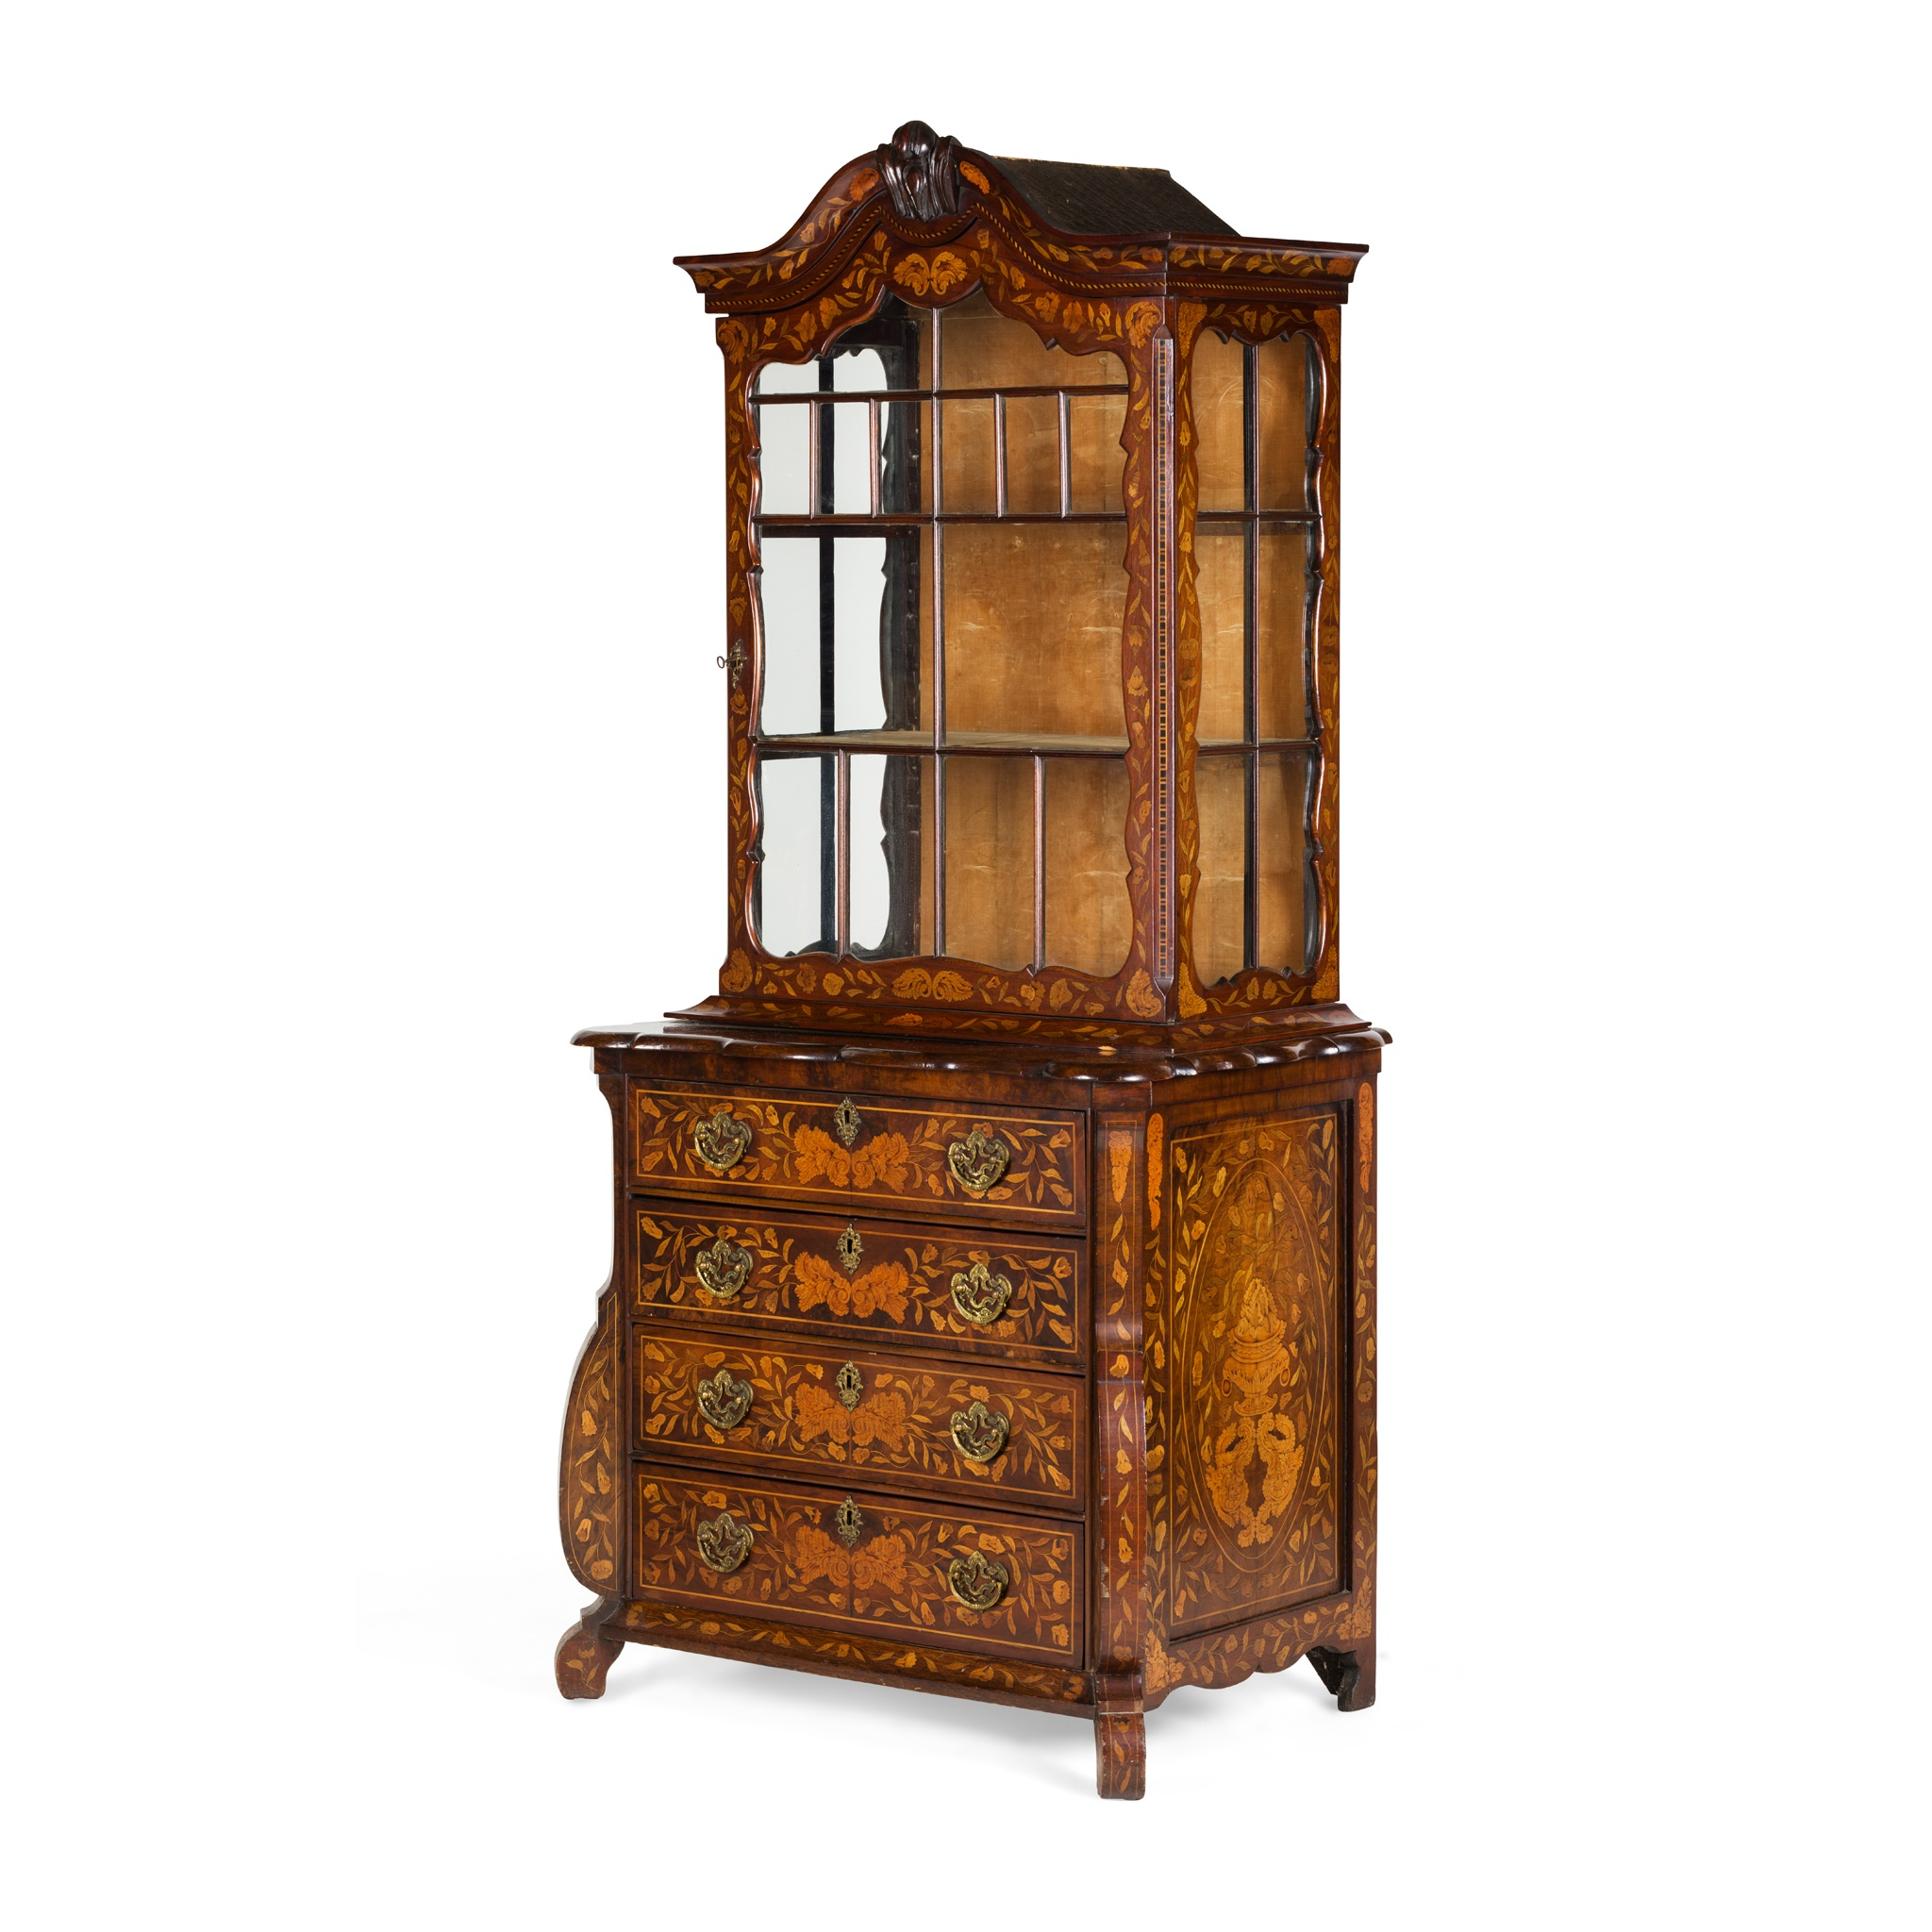 DUTCH WALNUT AND MARQUETRY DISPLAY CABINET-ON-CHEST EARLY 19TH CENTURY - Image 2 of 2